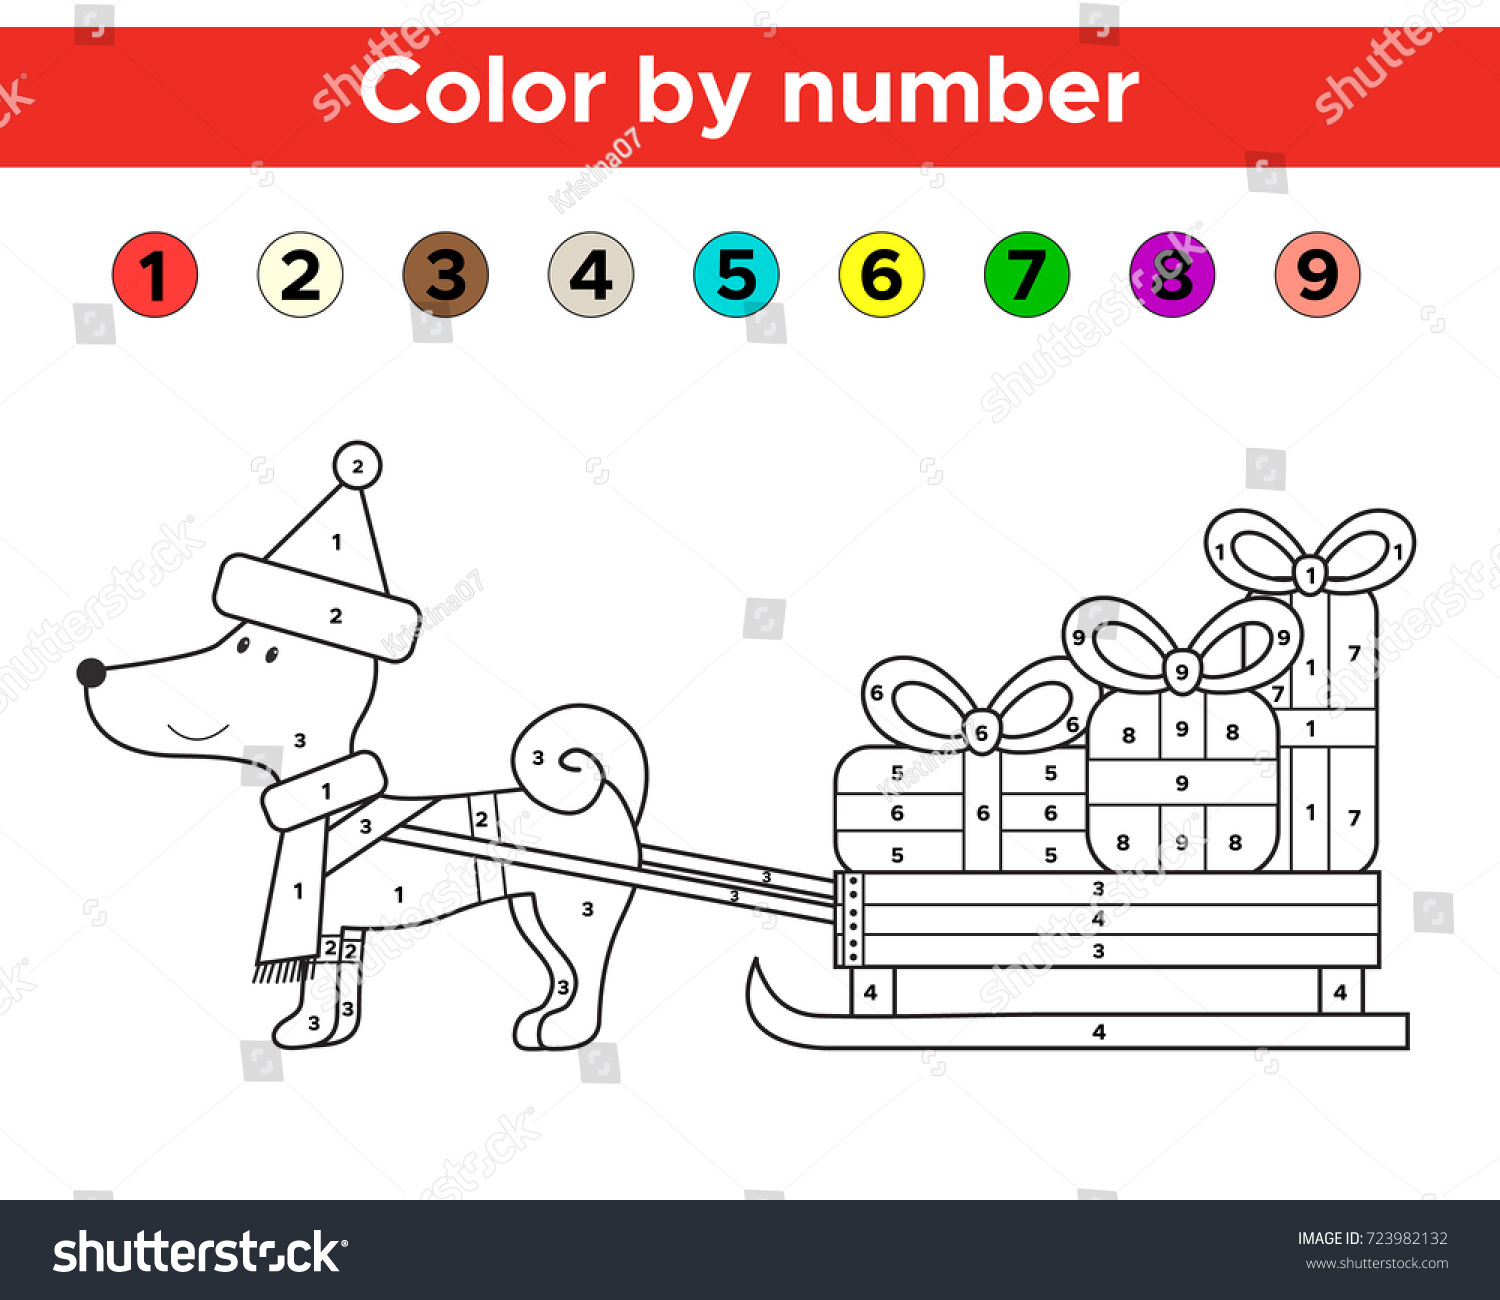 Color By Number For Preschool And School Kids Christmas Coloring Page With Funny Cartoon Dog